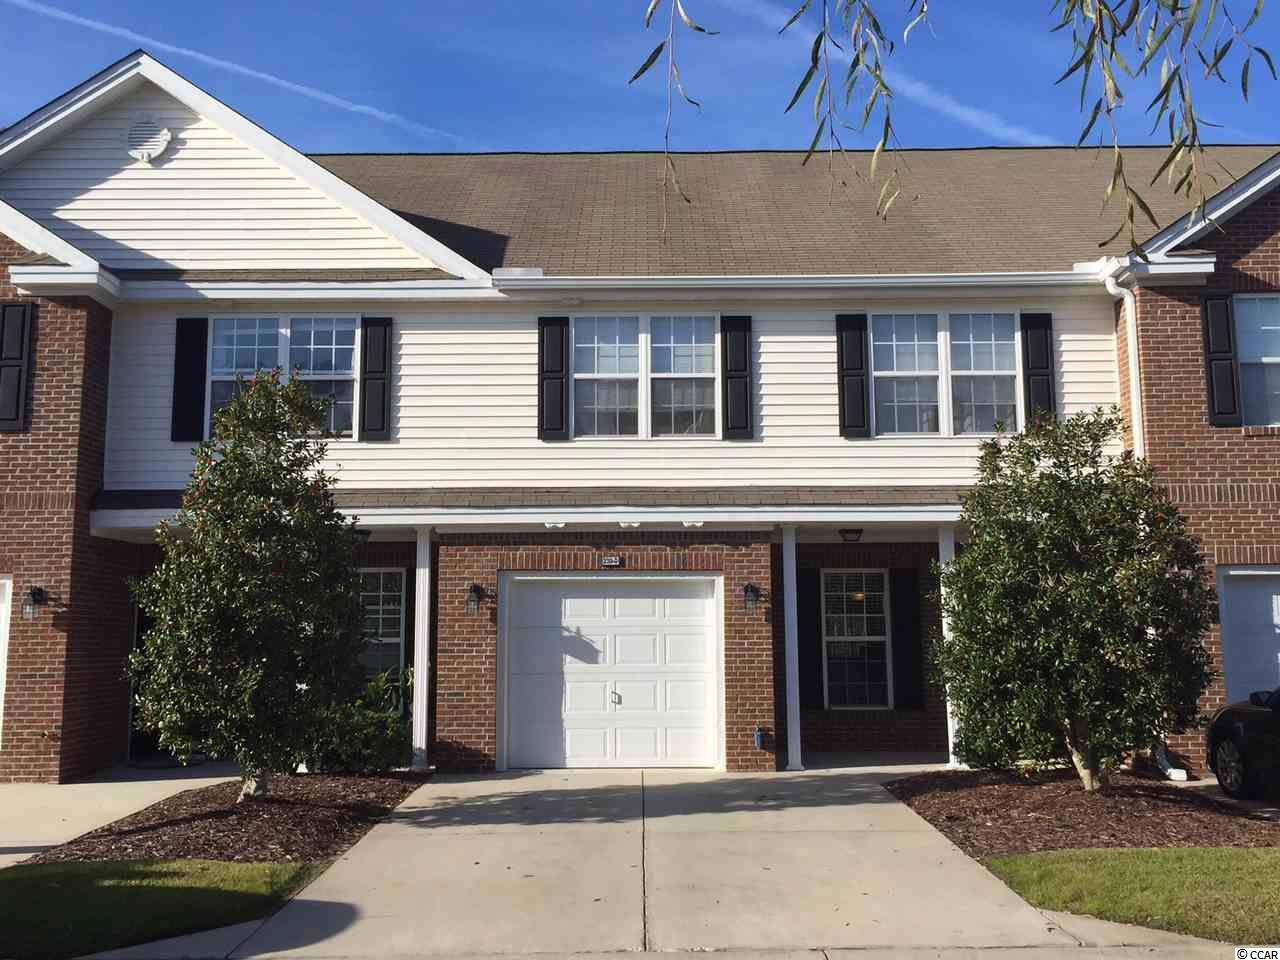 Three bedroomscondos for sale at st andrews townhomes myrtle beach for 3 bedroom condo myrtle beach sc